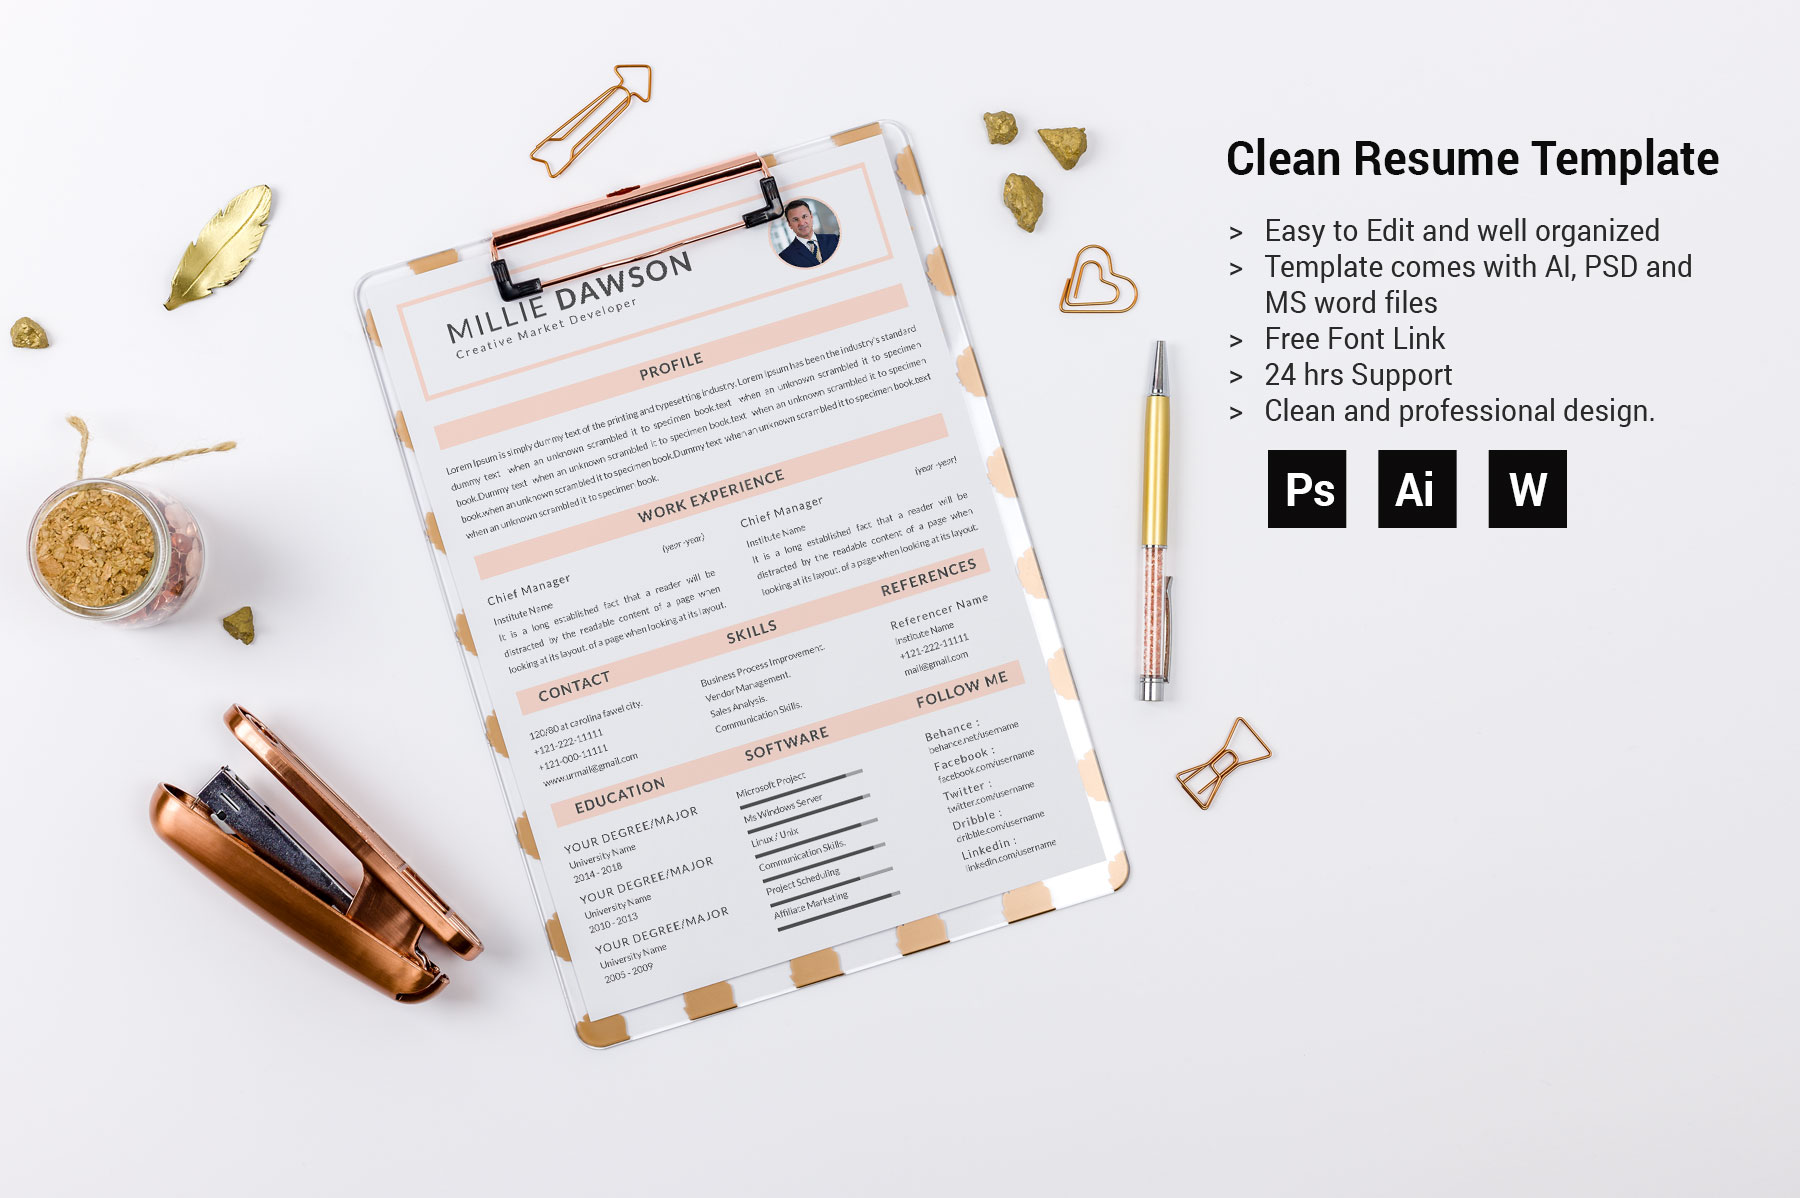 Professional Cv Resume Bonus business card Word/PSD,AI example image 4